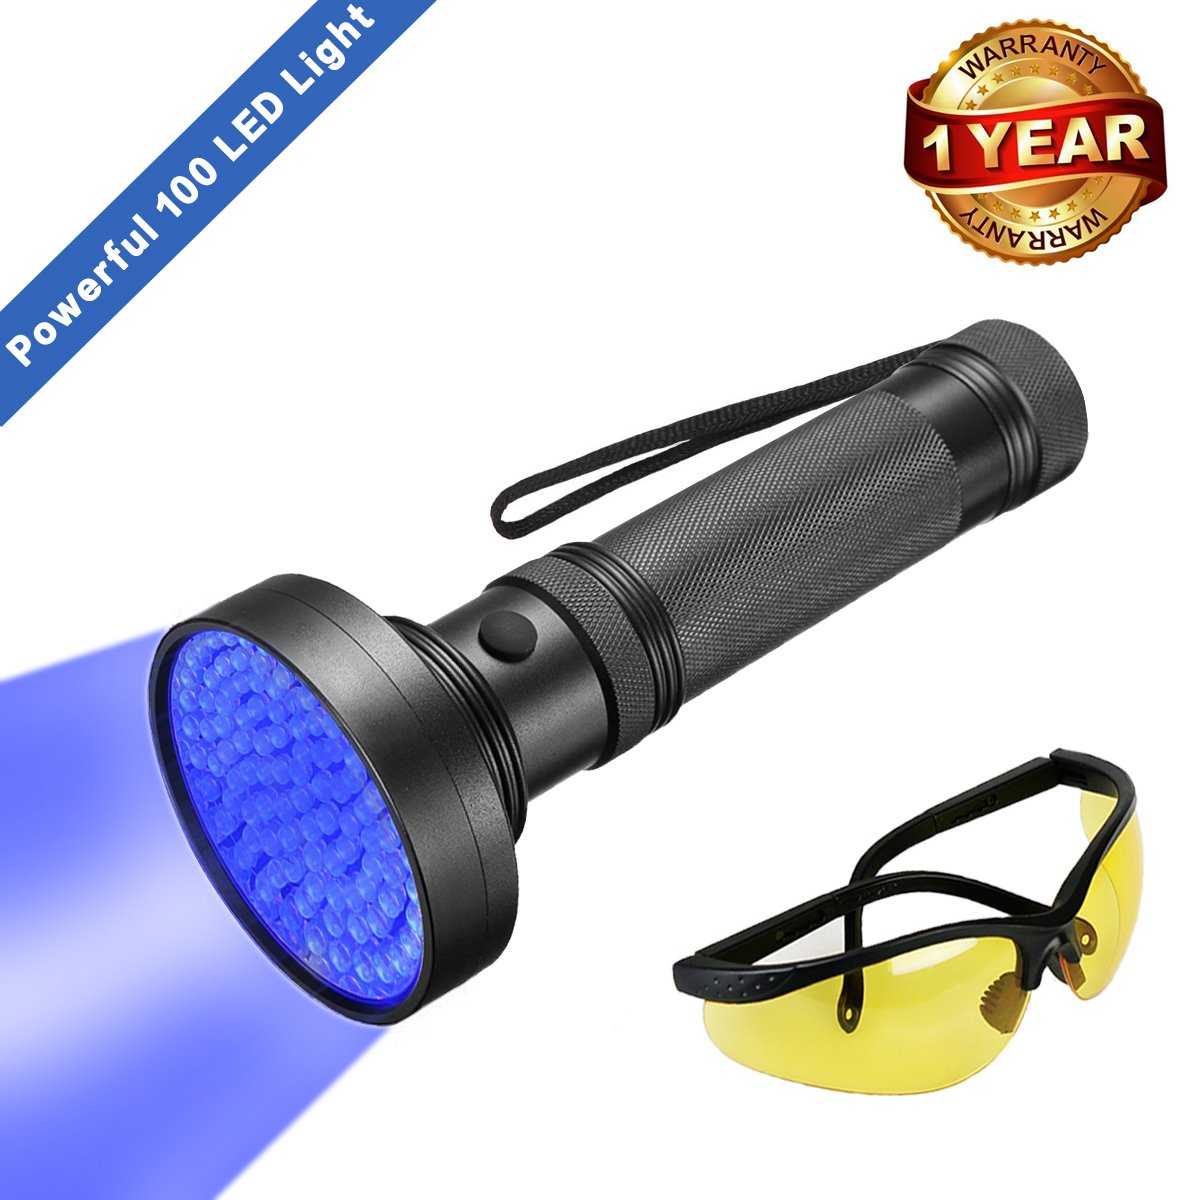 9487ad5a94 Cheap Super Uv Flashlight